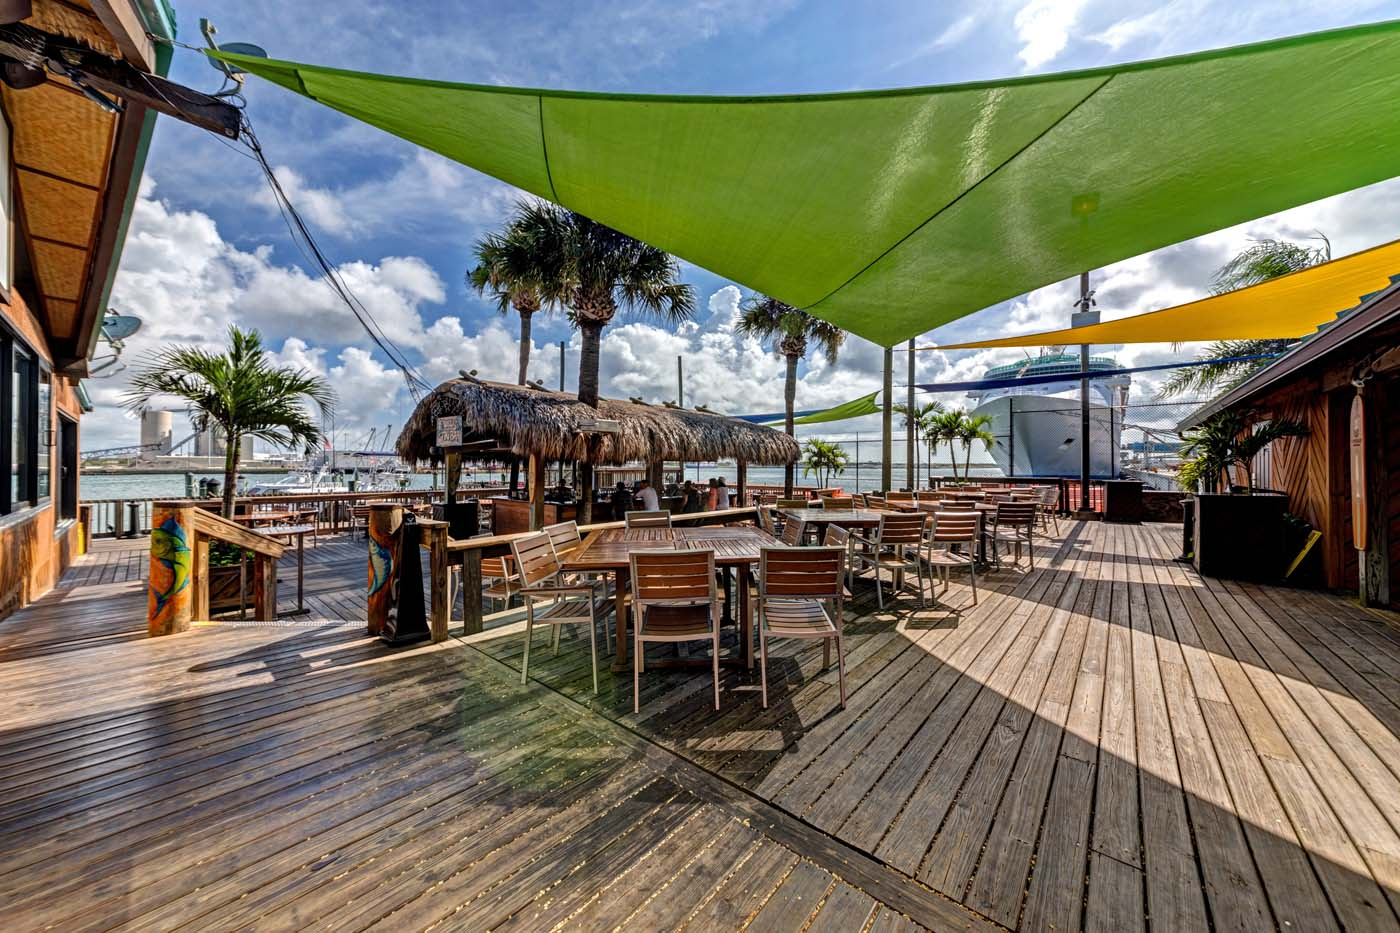 Seafood Restaurants Near Me In Orlando